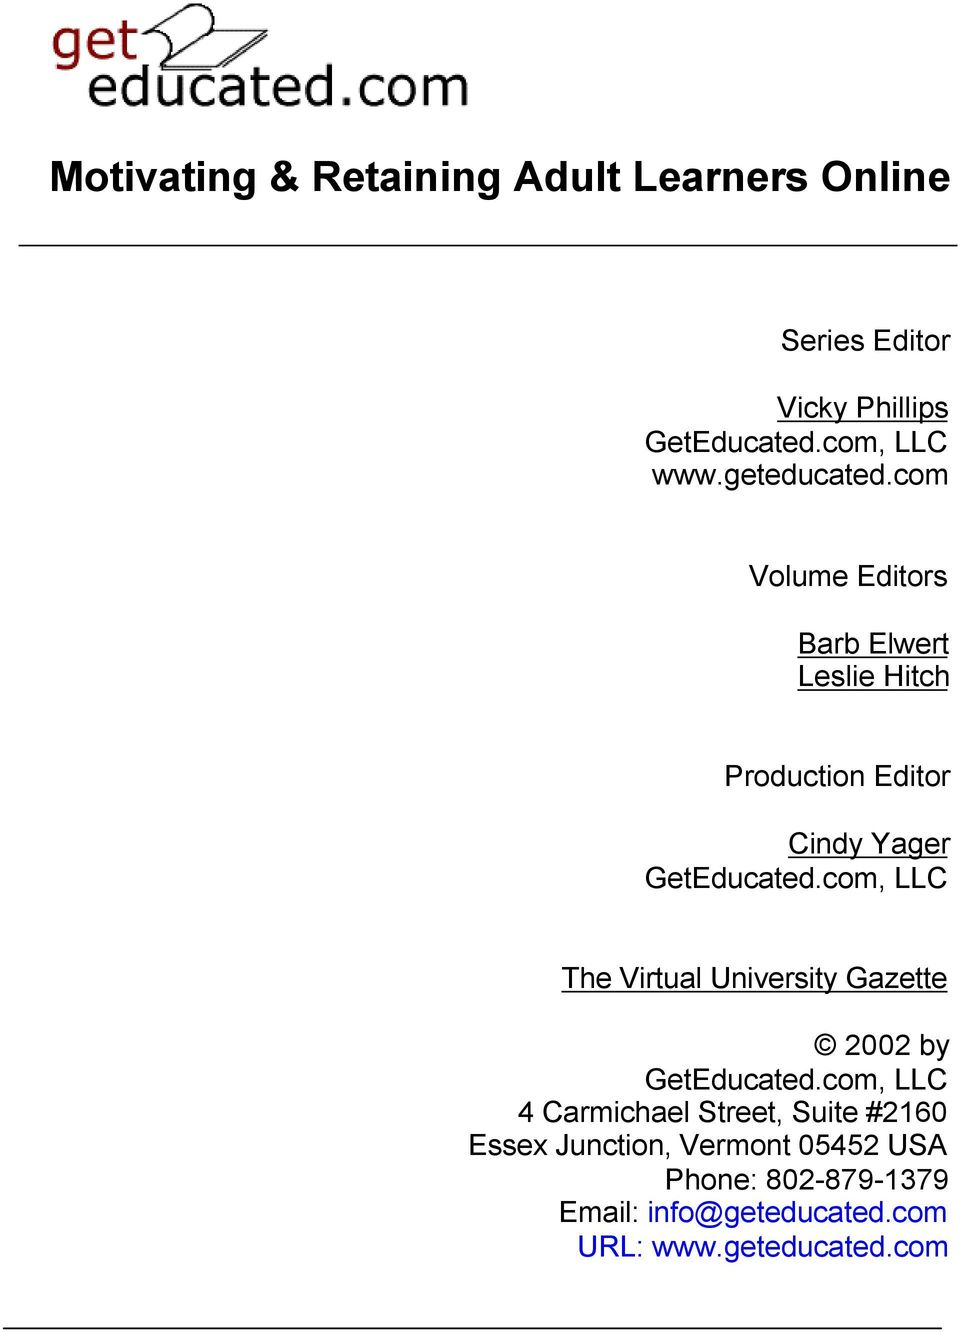 com, LLC The Virtual University Gazette 2002 by GetEducated.